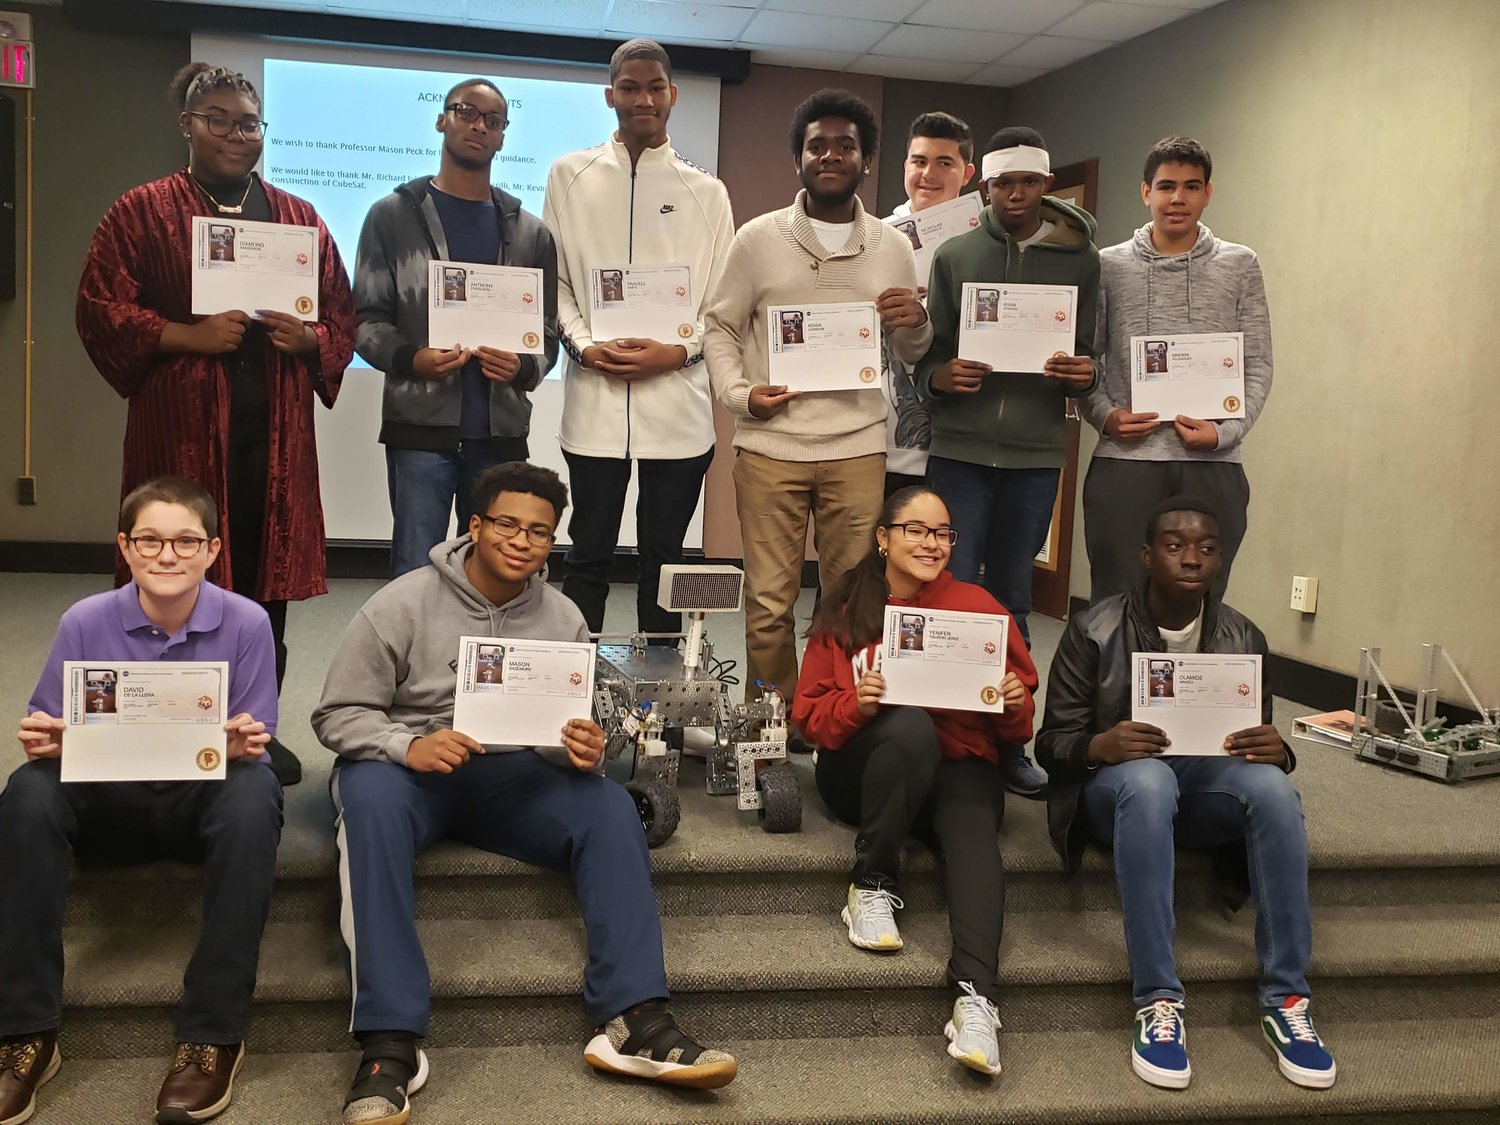 students received NASA certificates stating that their names will appear on the Rocket Atlas V-541 heading to Mars next July from Cape Canaveral, Fla.